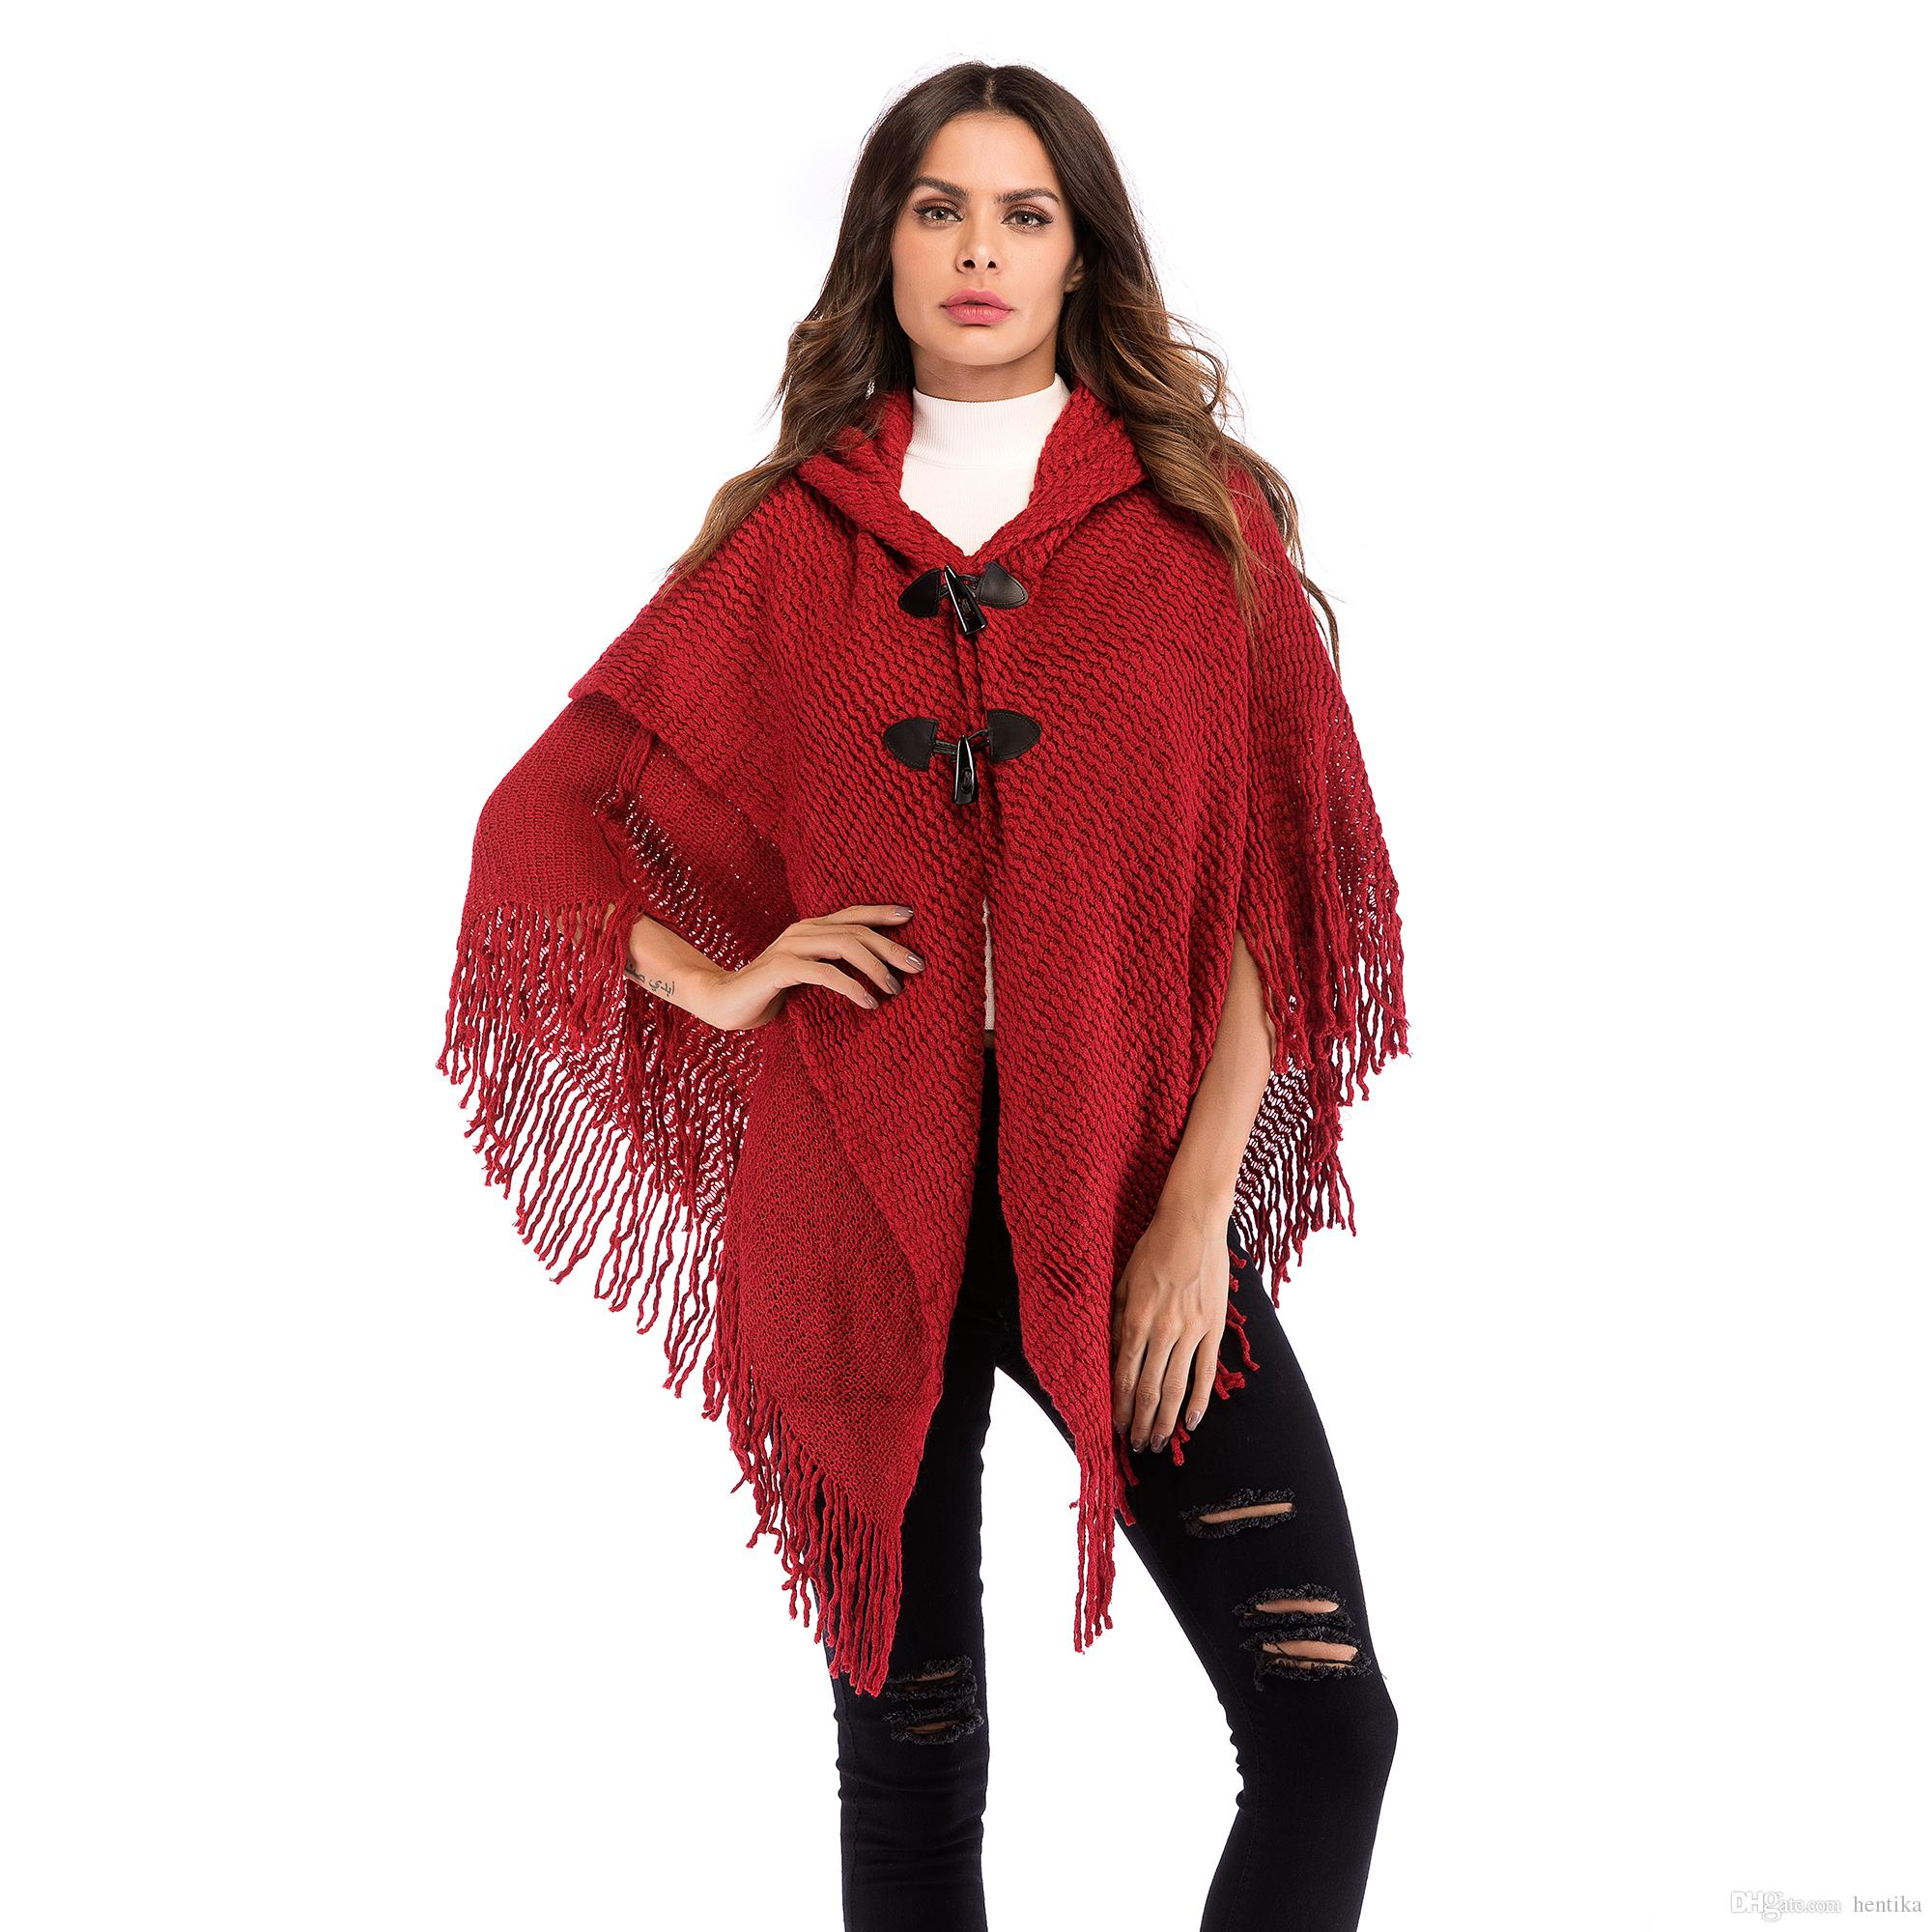 8a135a25294cc4 2019 Hooded Cape Tassels Batwing Sleeve Double Breasted Fashion Sweater  Free Size Vintage Style Women Coats From Hentika, $25.18 | DHgate.Com